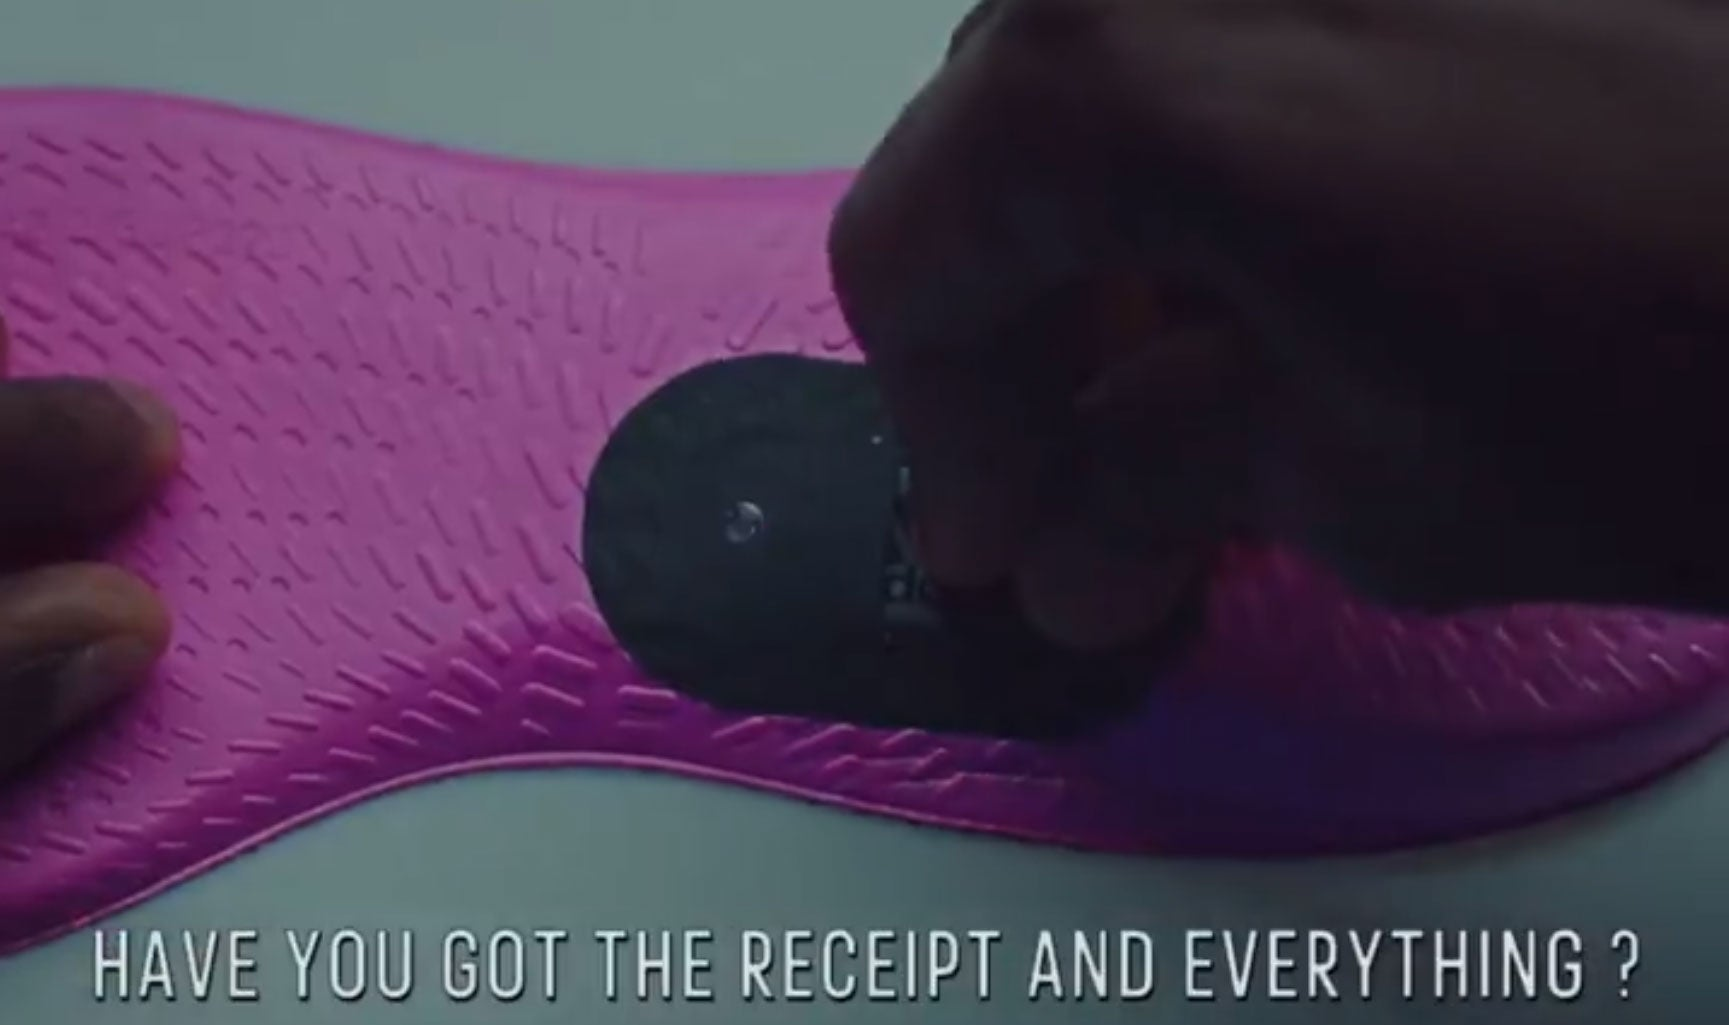 FIFA Team Can Be Trained By Putting A Chip In Your Shoe